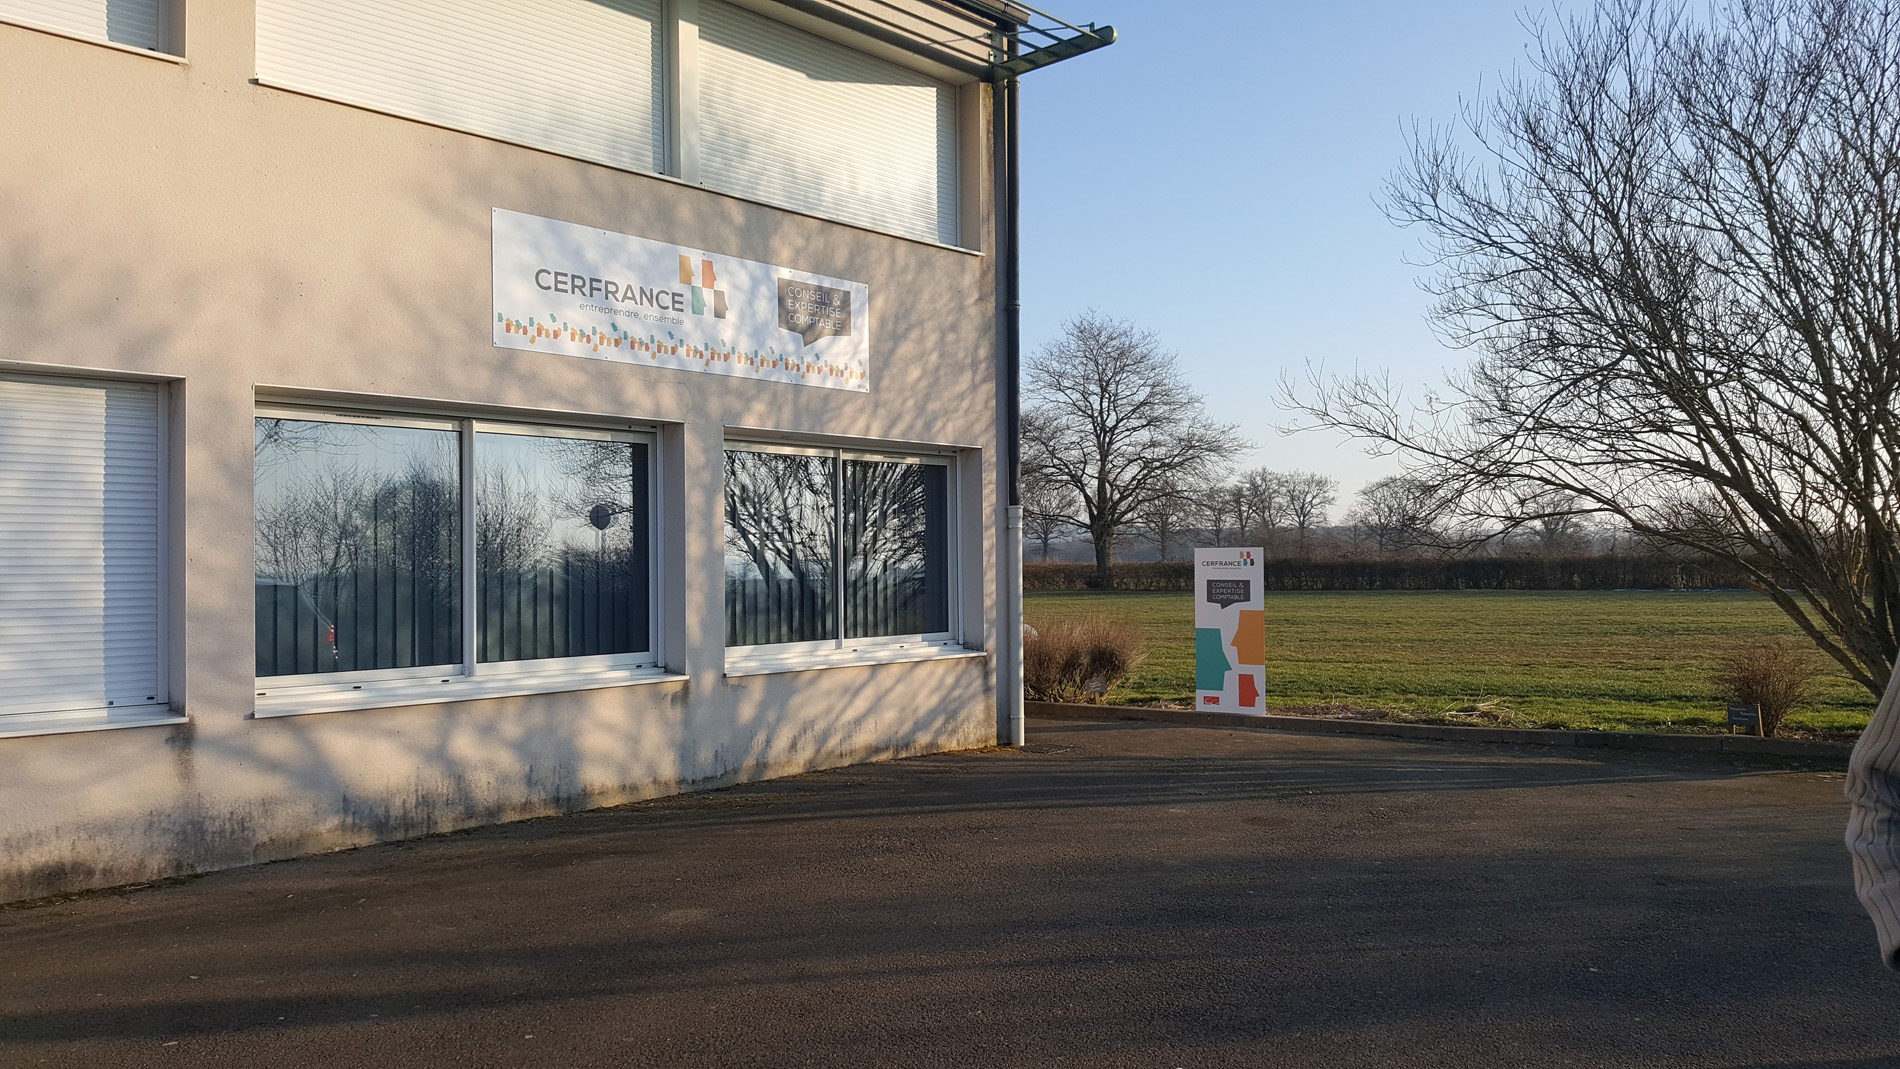 Agence Antenne d'Anzy-Le-Duc cerfrance